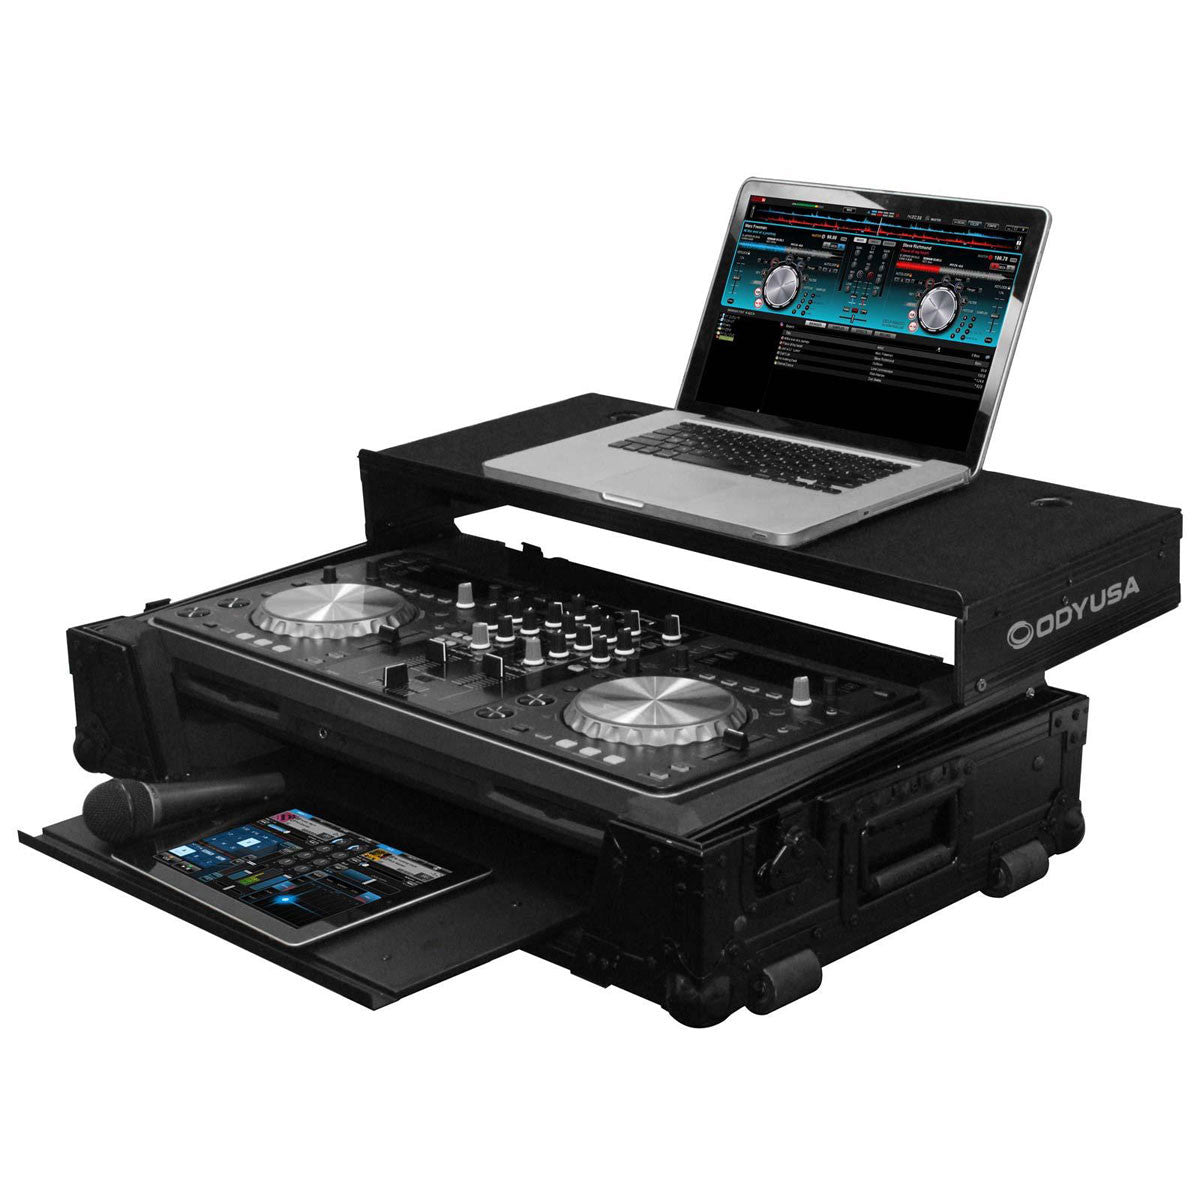 Odyssey: Black Label Pioneer XDJ-R1 Controller Glide Style Case with Bottom GT Glide Tray (FZGSPIXDJR1GTBL)